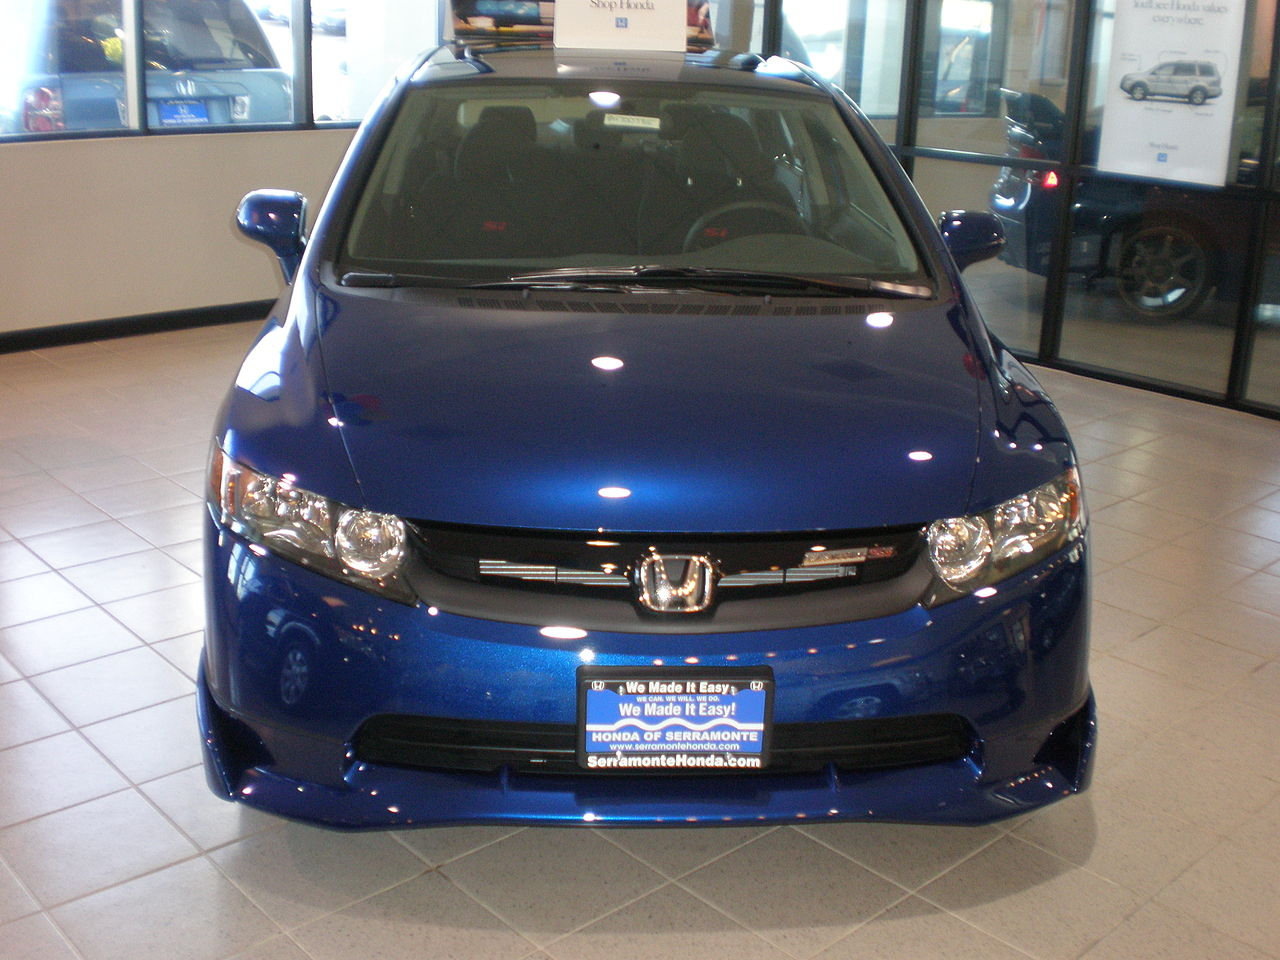 2019 Honda Civic Mugen Si Sedan photo - 4